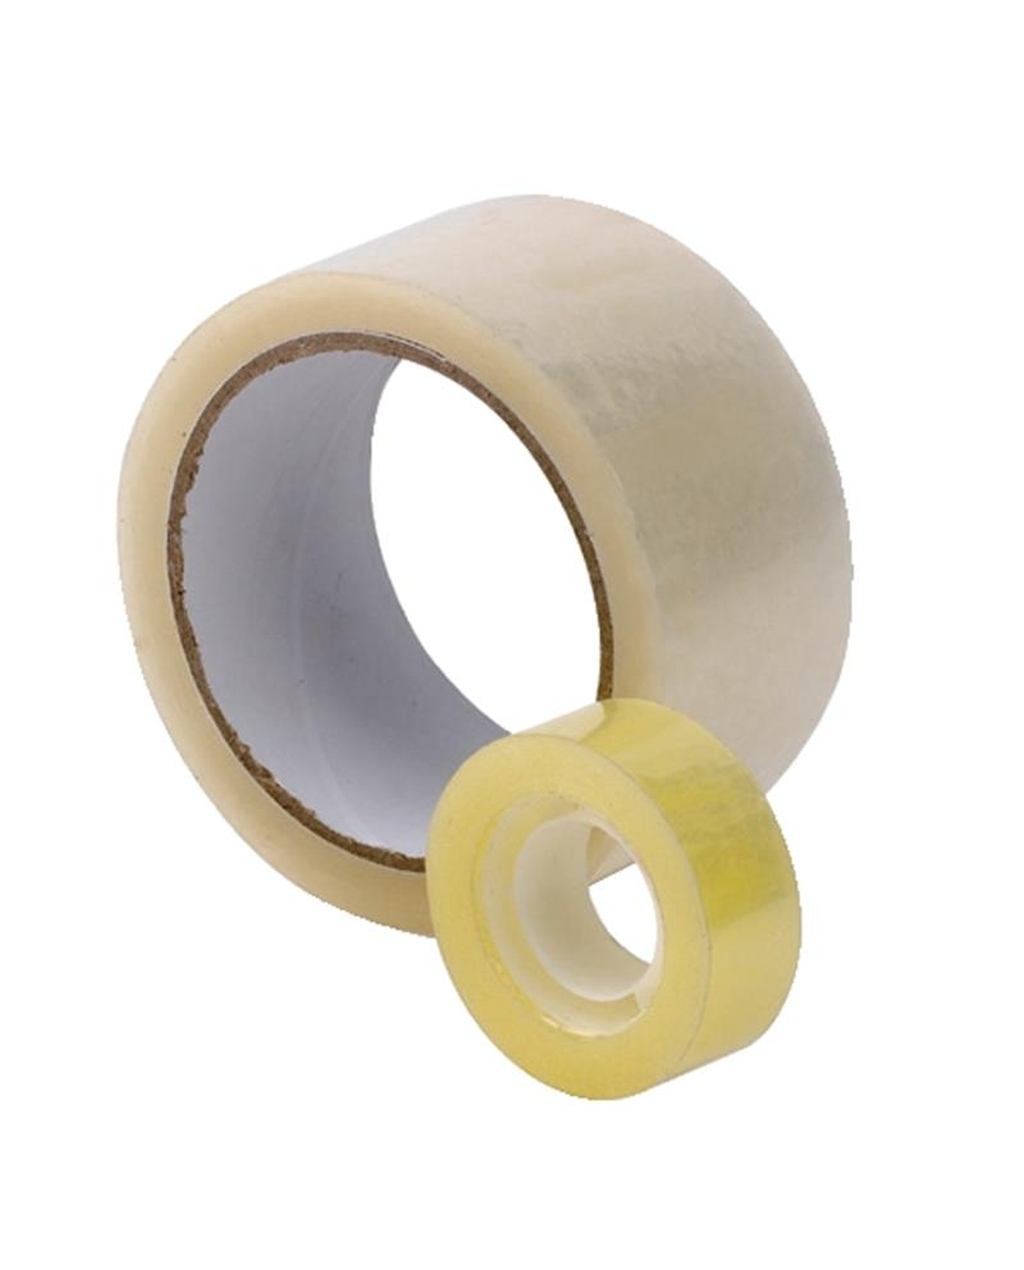 Clear Adhesive Tape - 48 x 66m, 76mm core